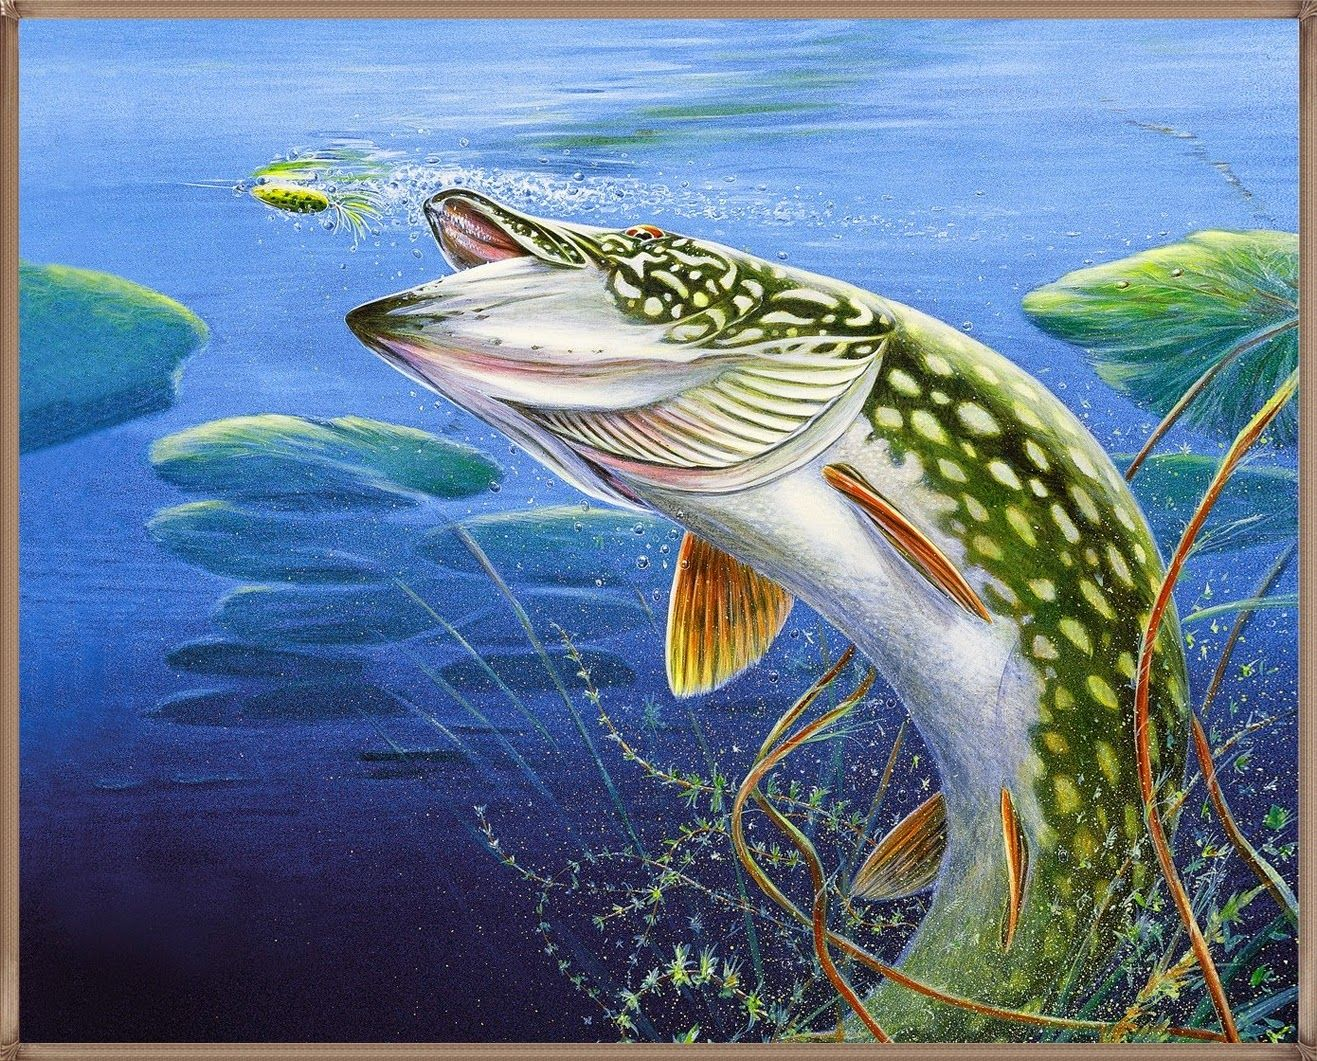 Hd Trout Fish Wallpapers